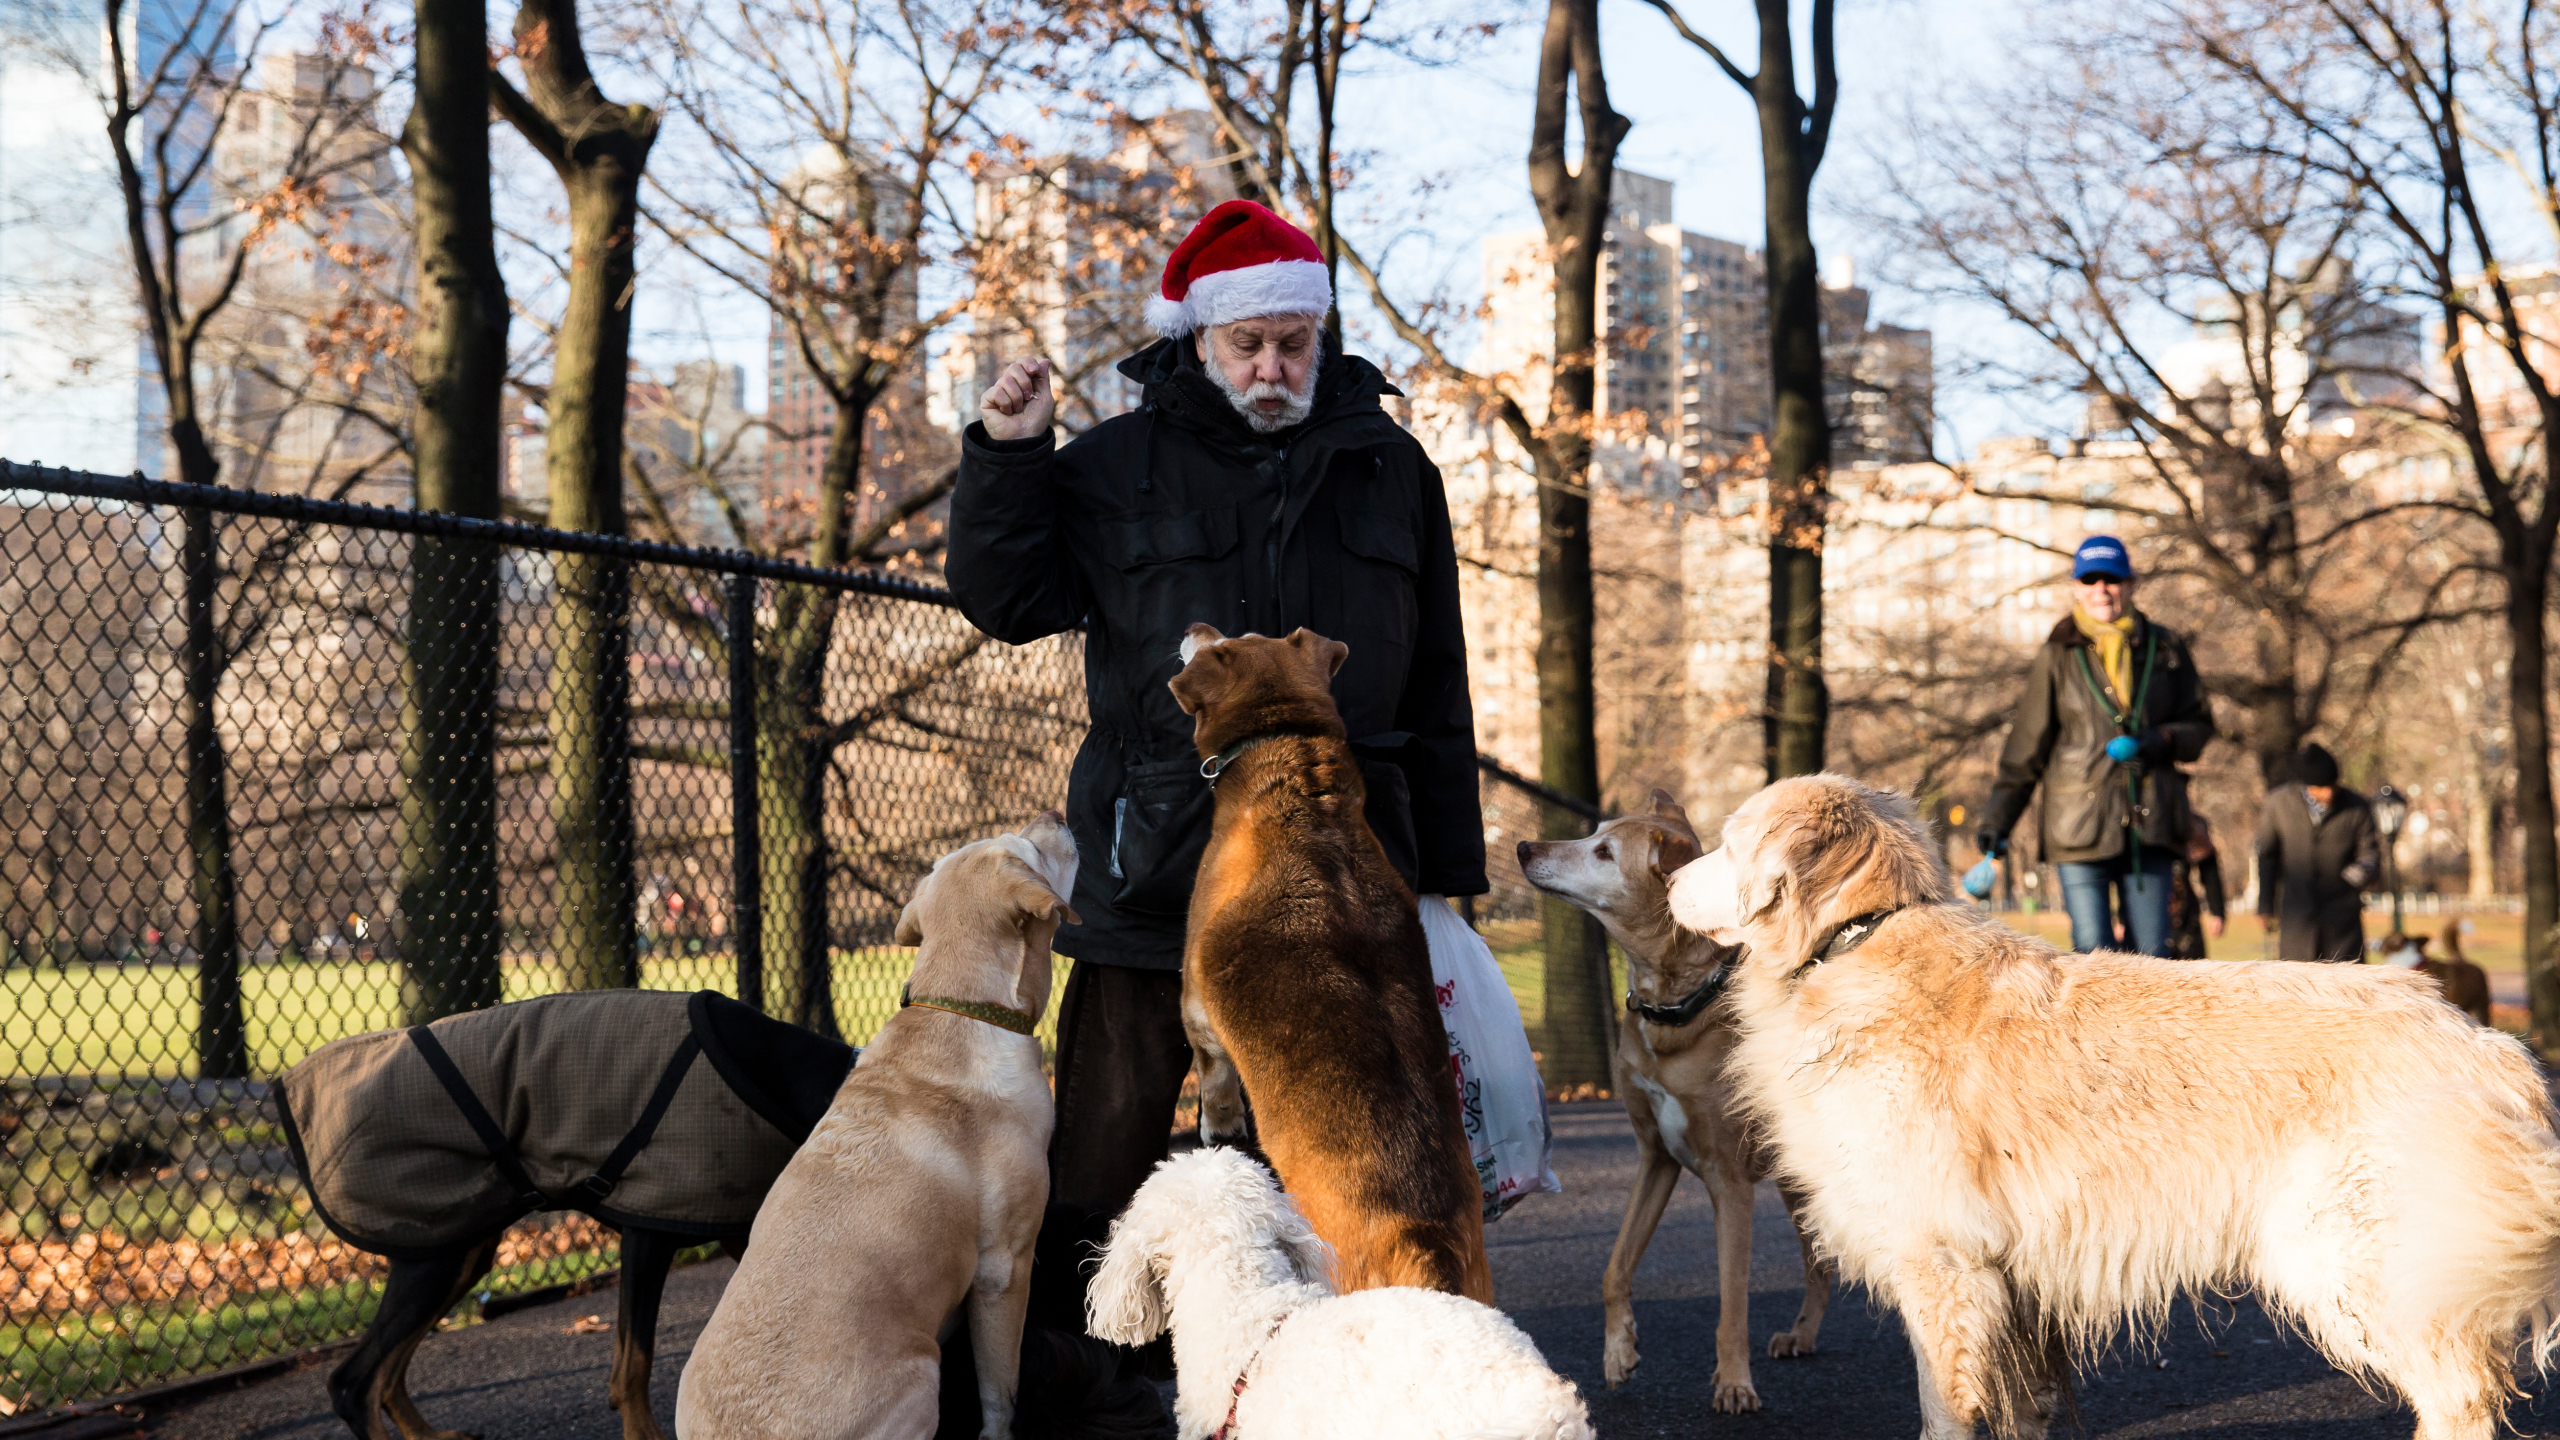 Share your Christmas spirit with homeless fur babies OurQuadCities 2560x1440